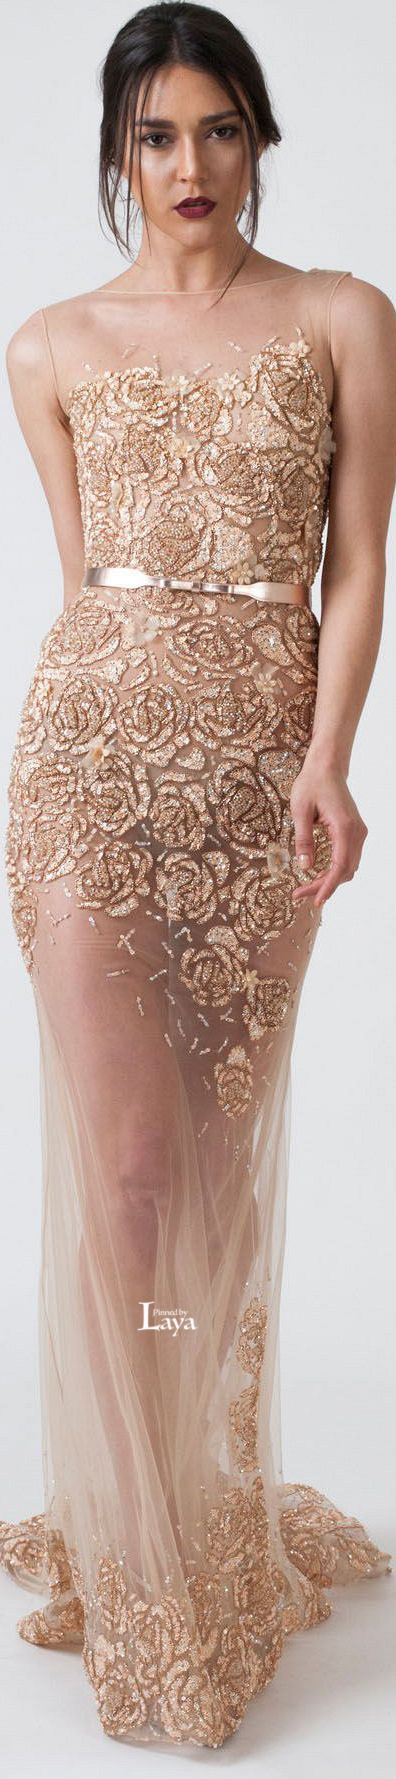 ABED MAHFOUZ S/S 2015 COUTURE If you like this item, please visit…                                                                                                                                                                                 More